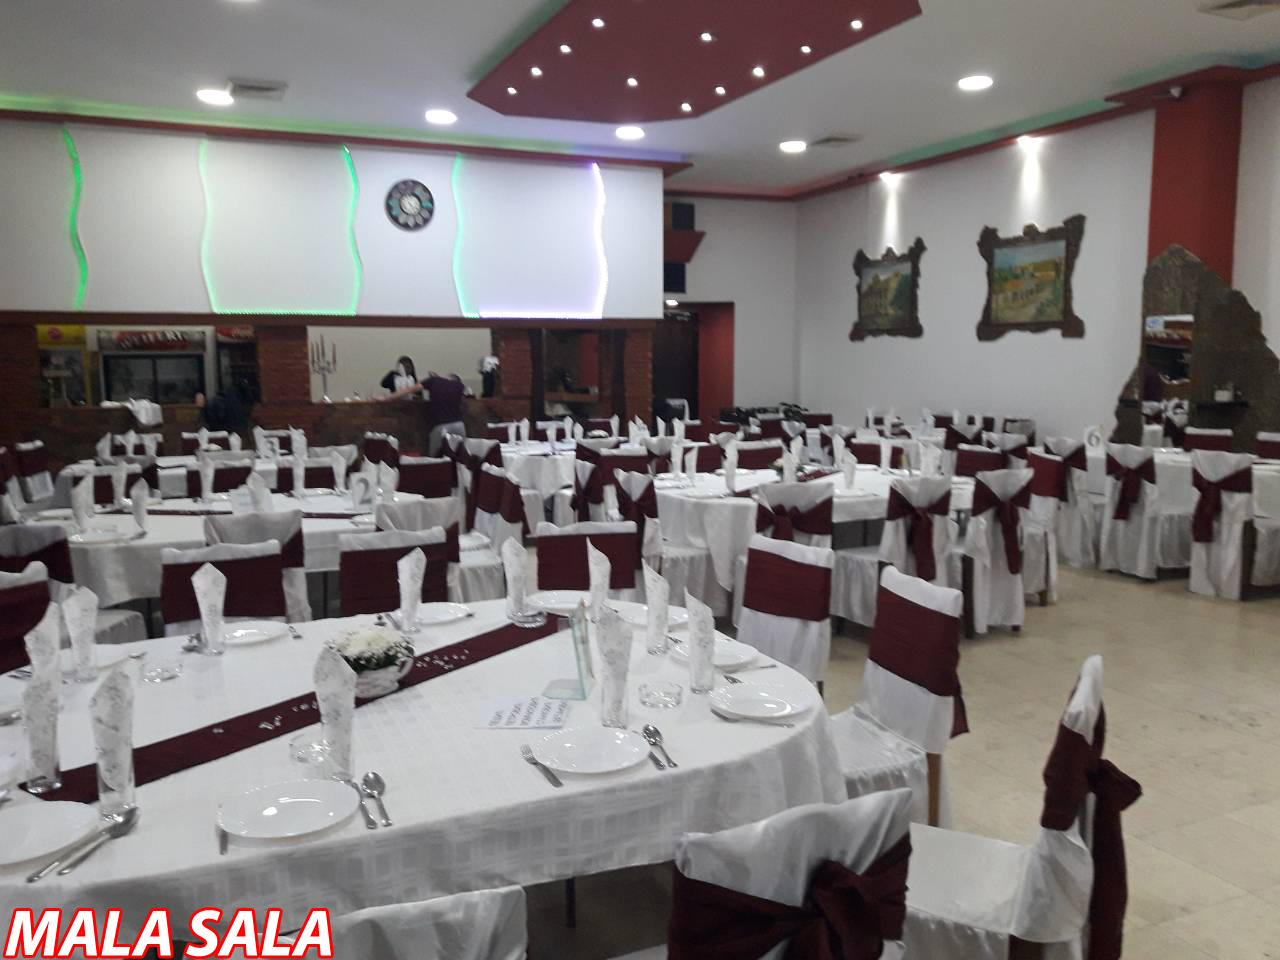 GRAND HALL KACAREVO AND CAFFE GRILL TICINO Renting halls Pancevo - Photo 6